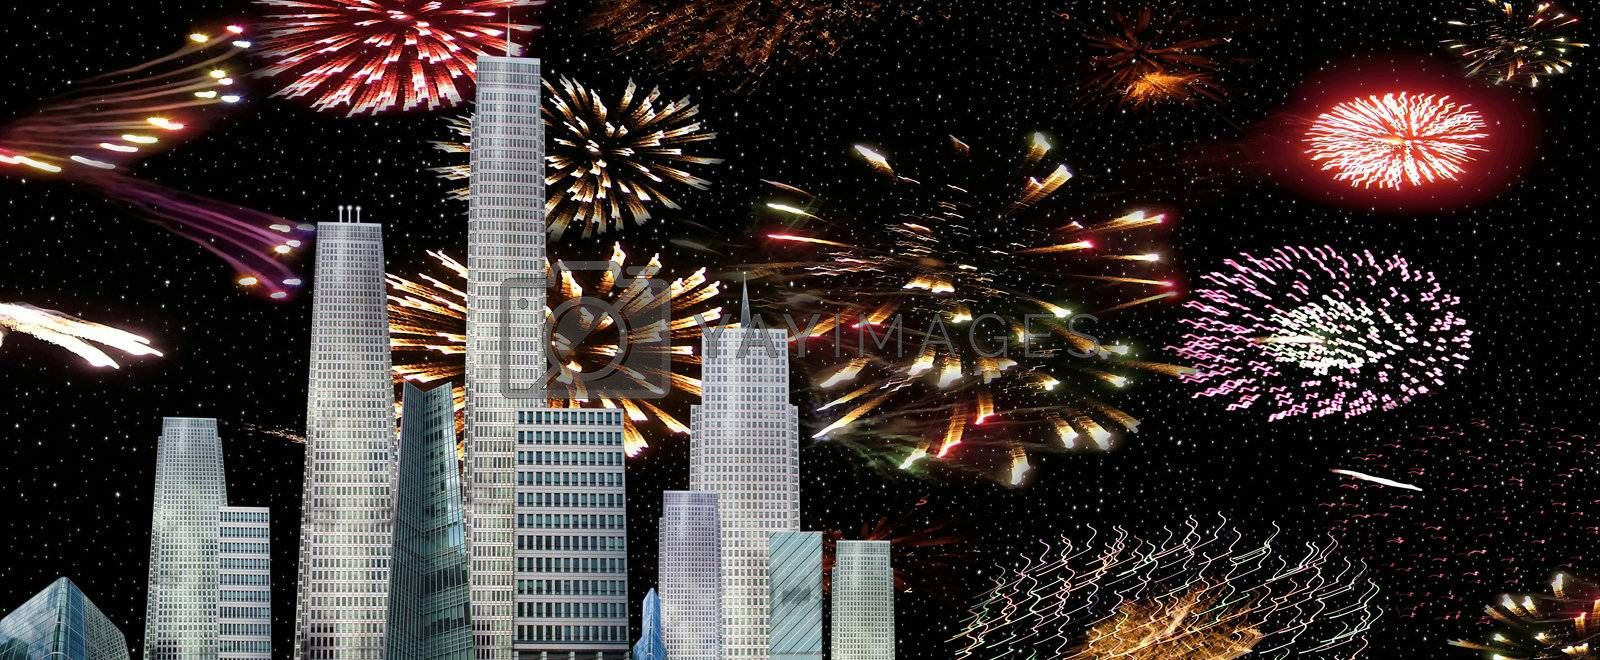 a city view of a firework celebrations